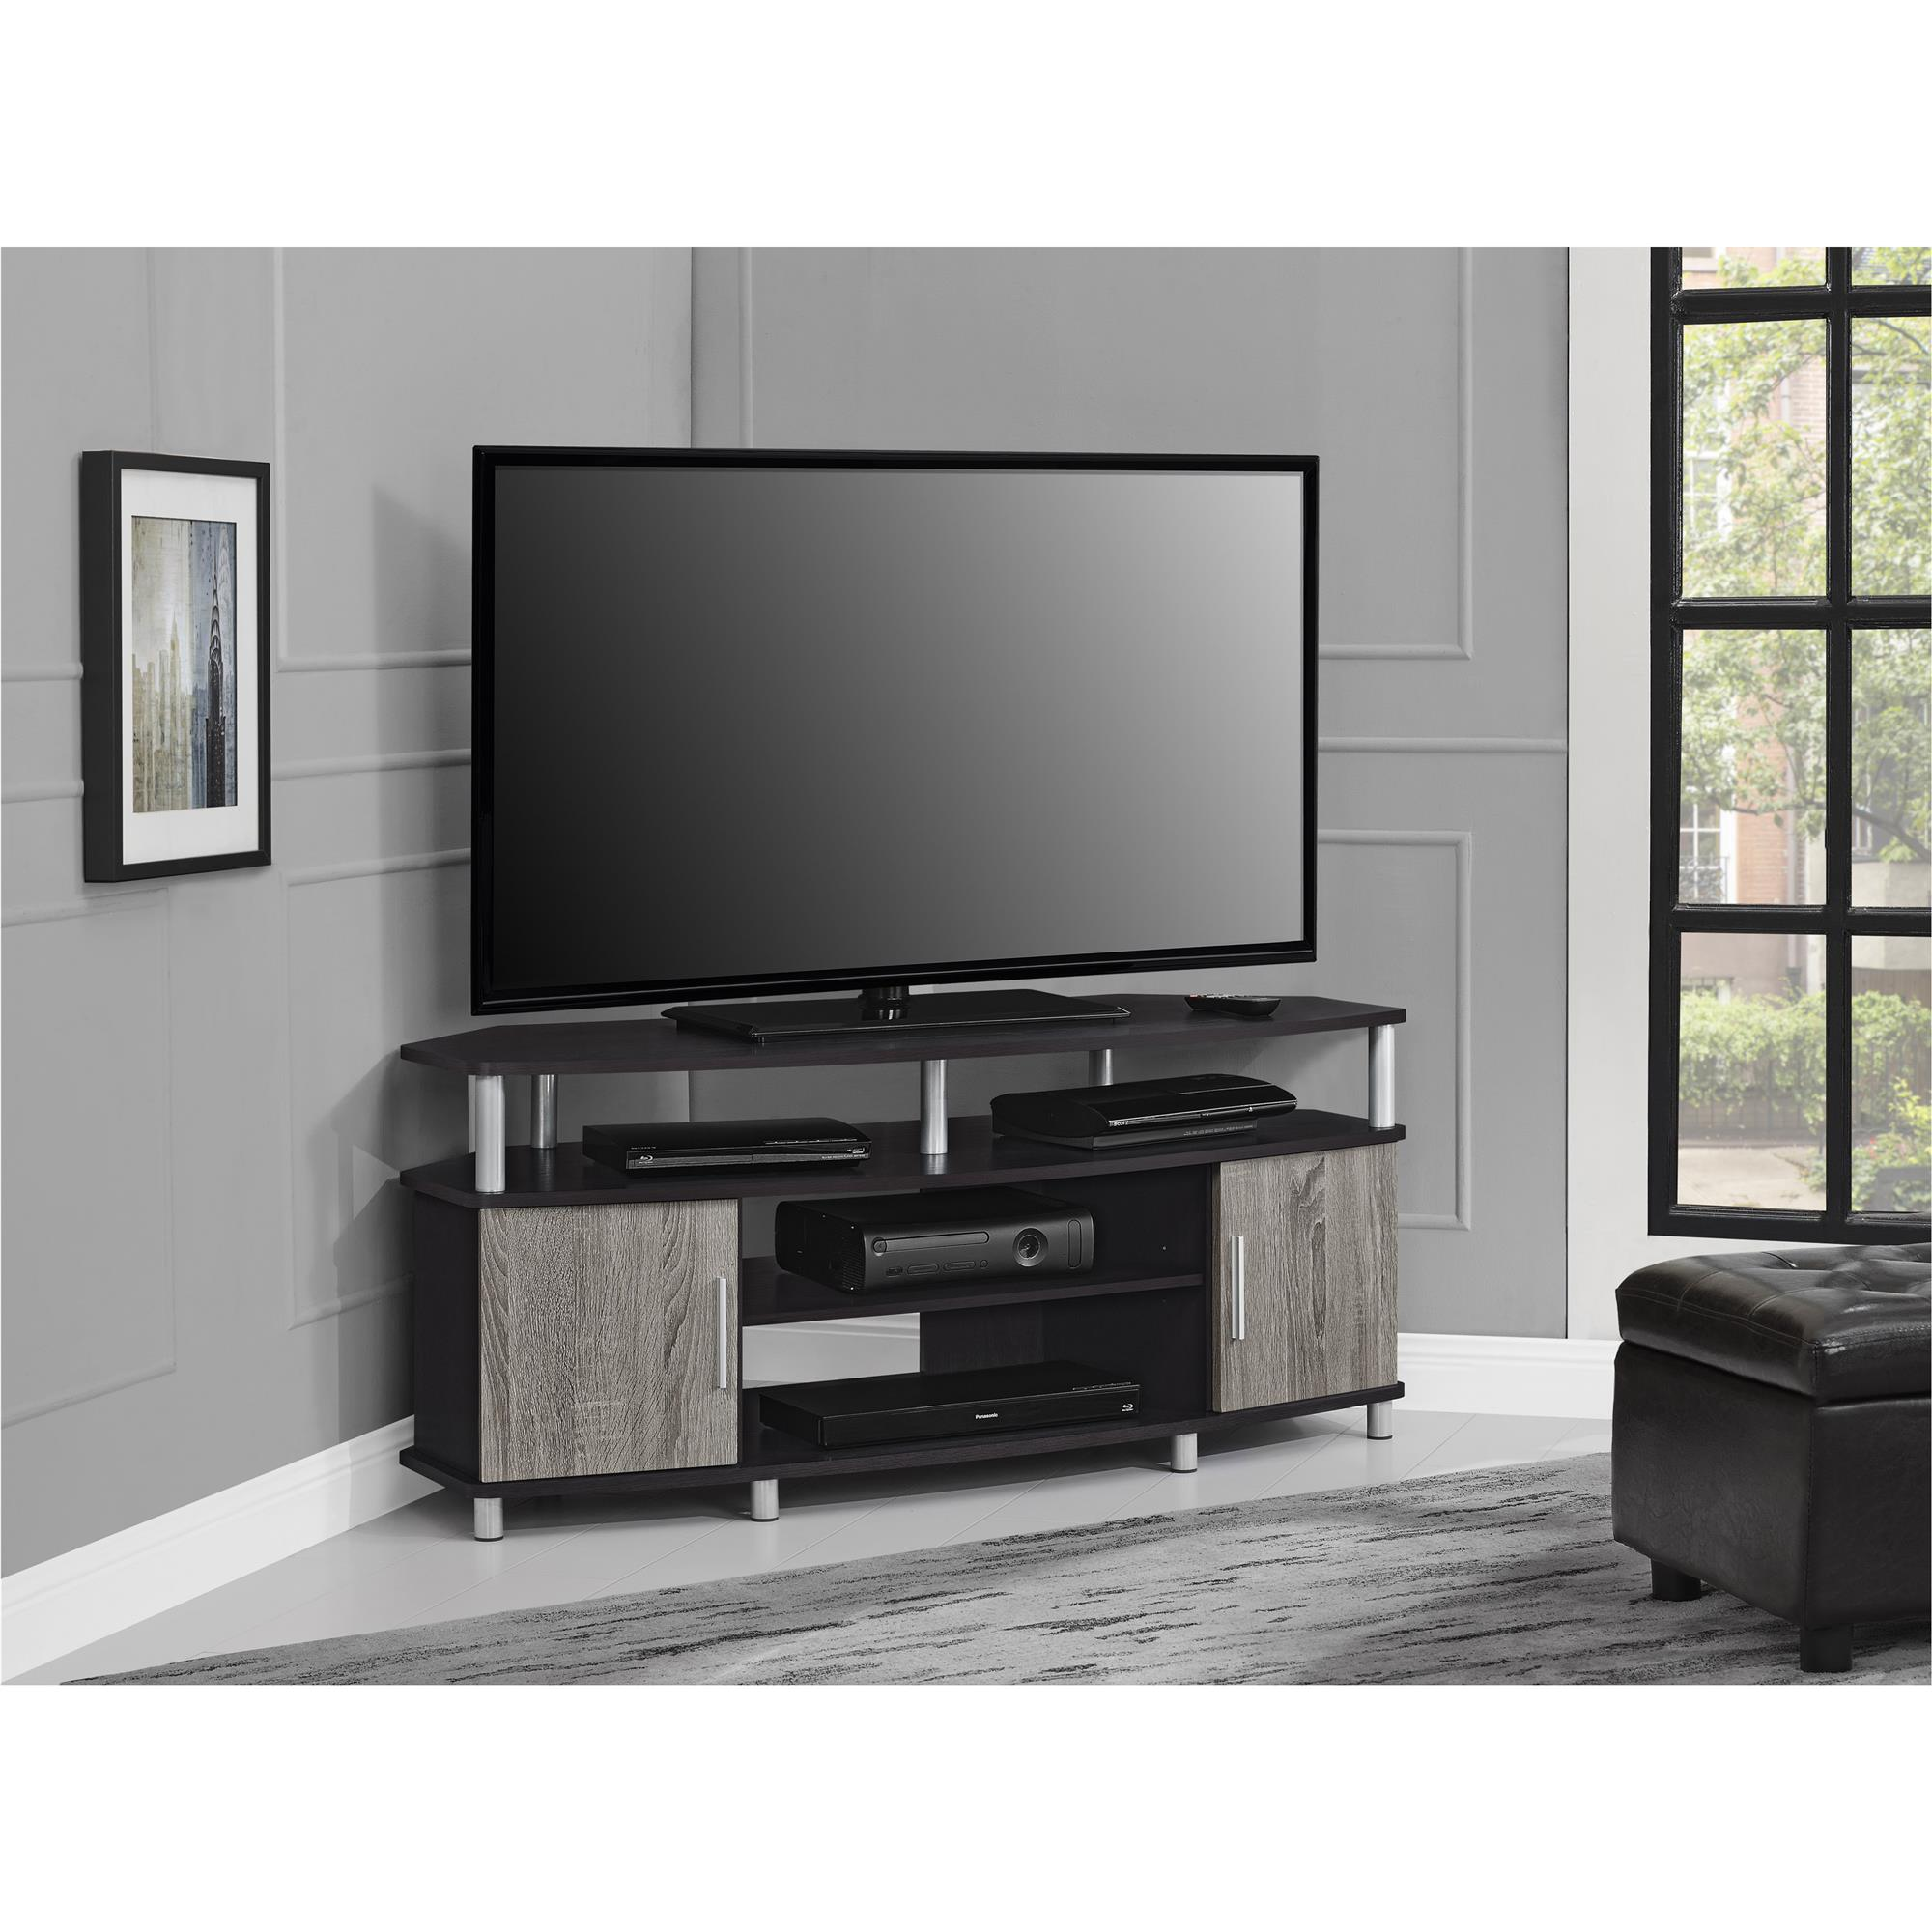 ameriwood home carson corner tv stand for tvs up to 50 wide black cherry walmart com